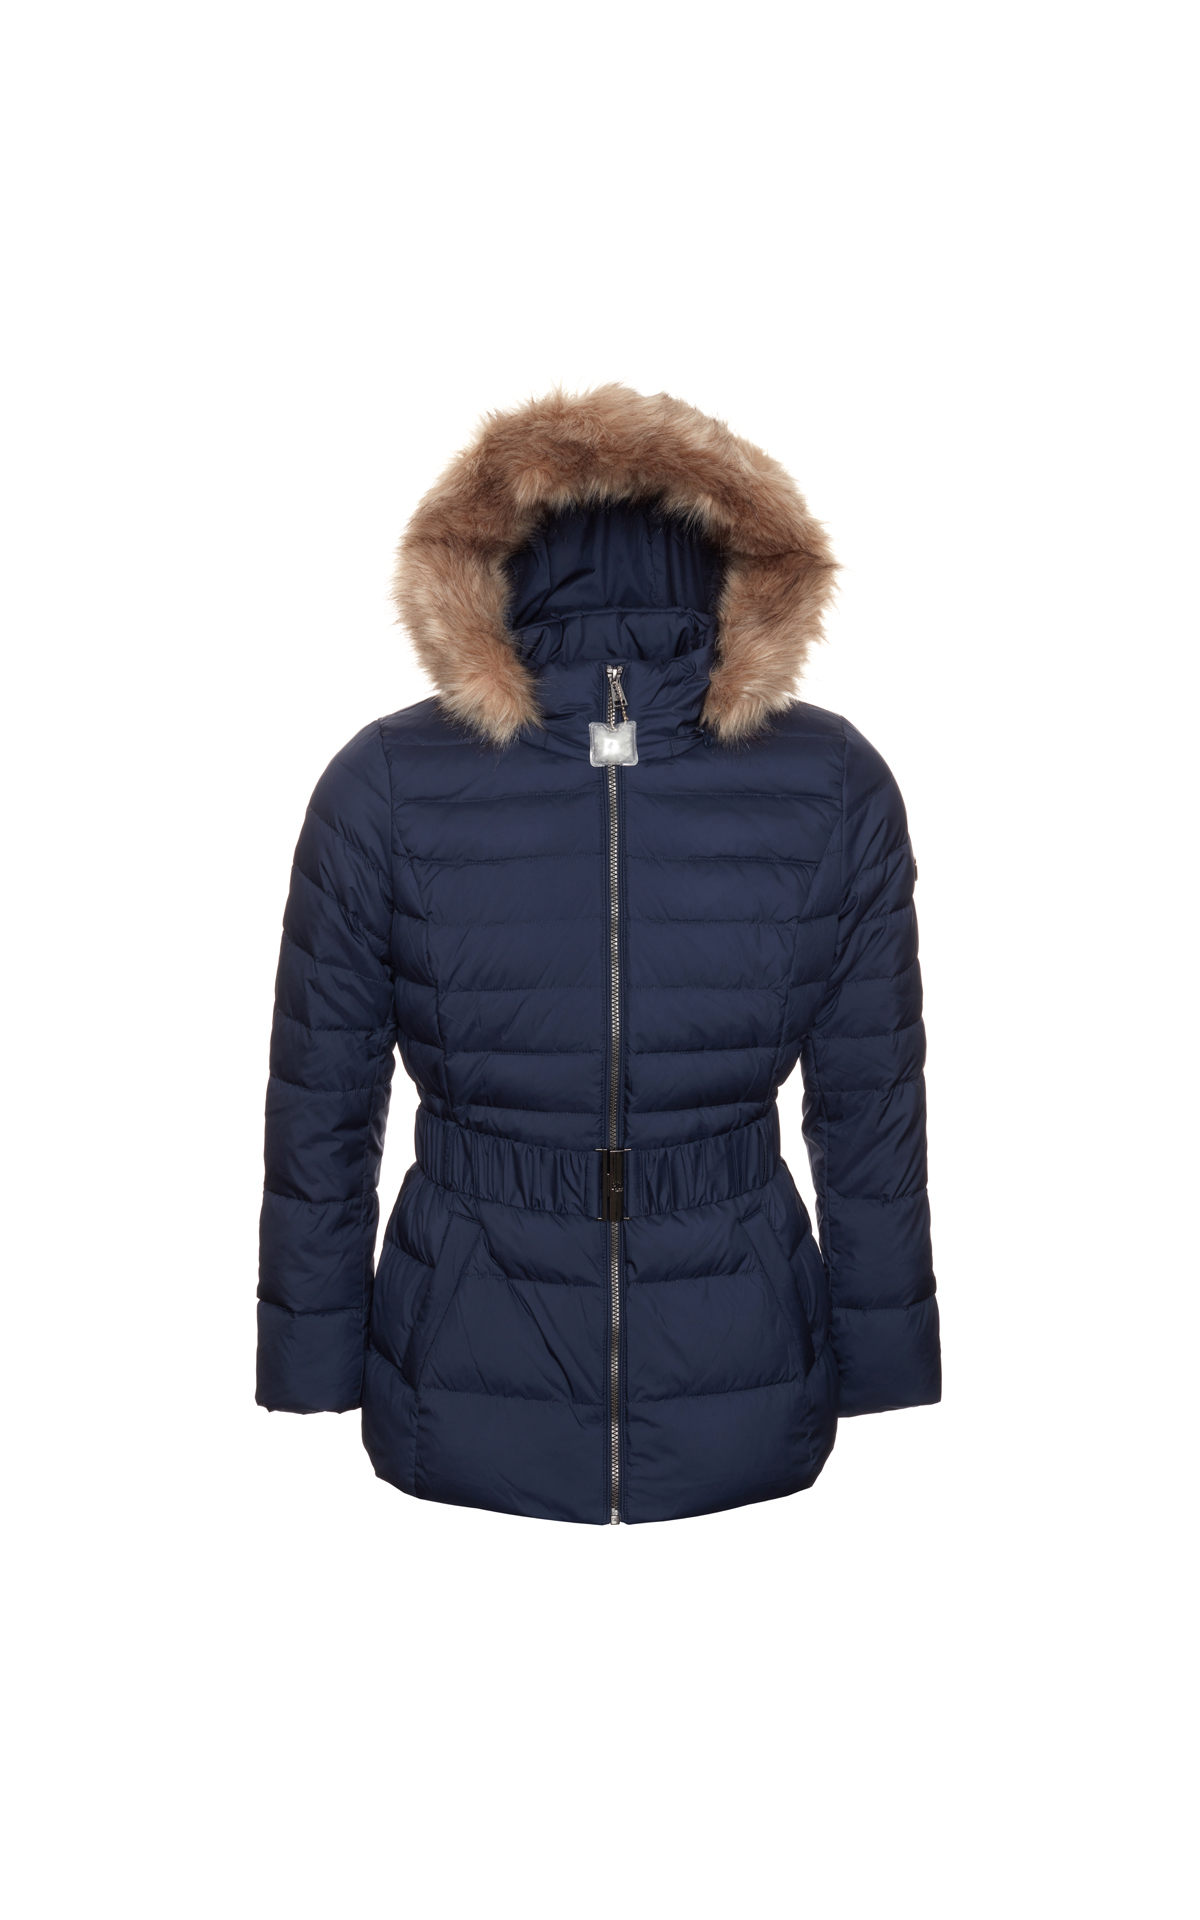 Polo Ralph Lauren Women's Belted Fur Puffa at The Bicester Village Shopping Collection